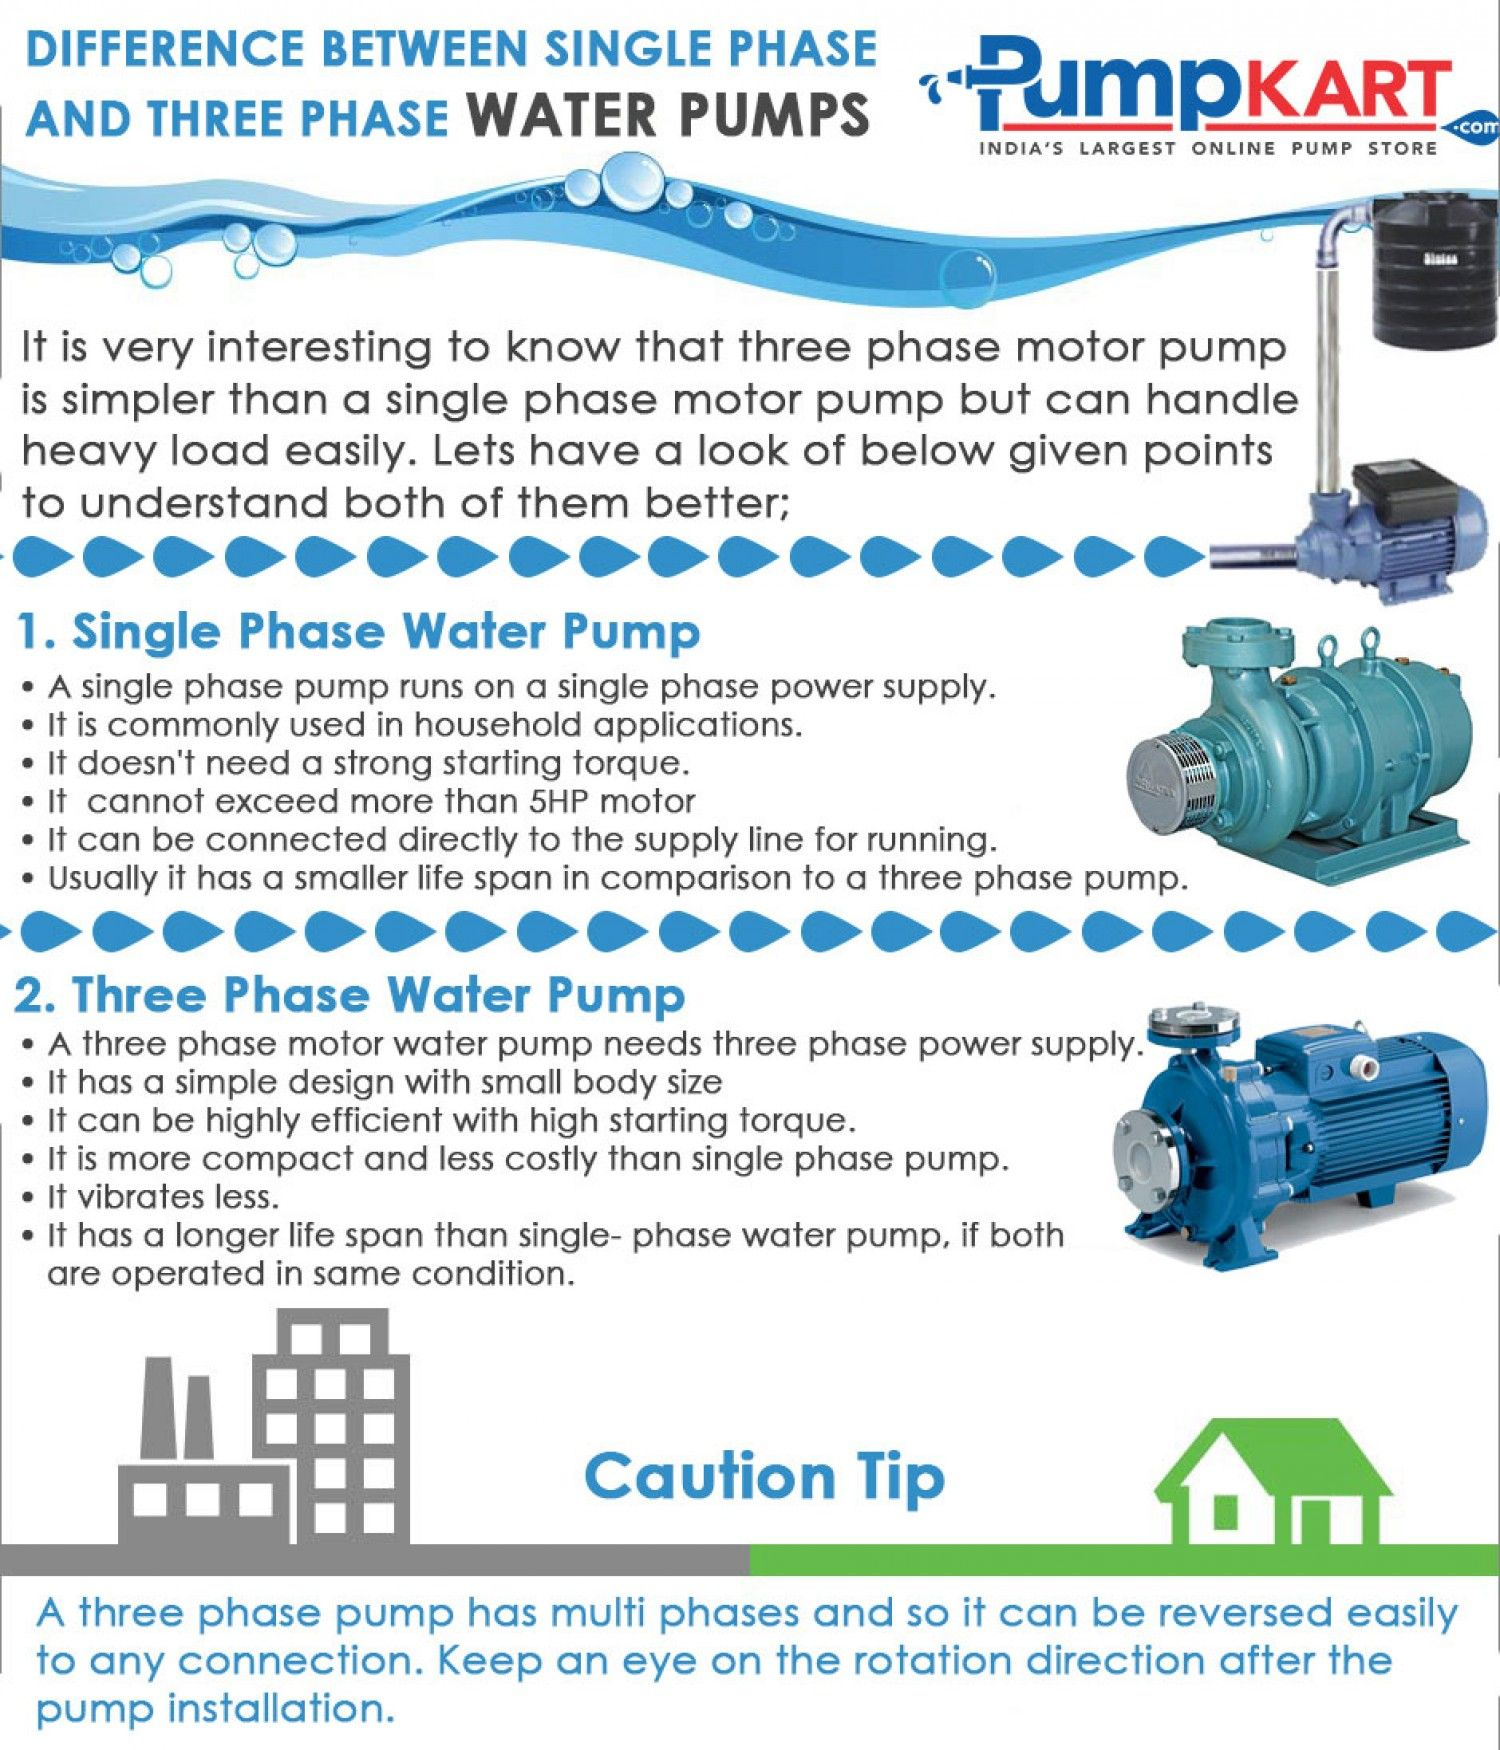 Difference Between Single Phase And Three Phase Water Pumps